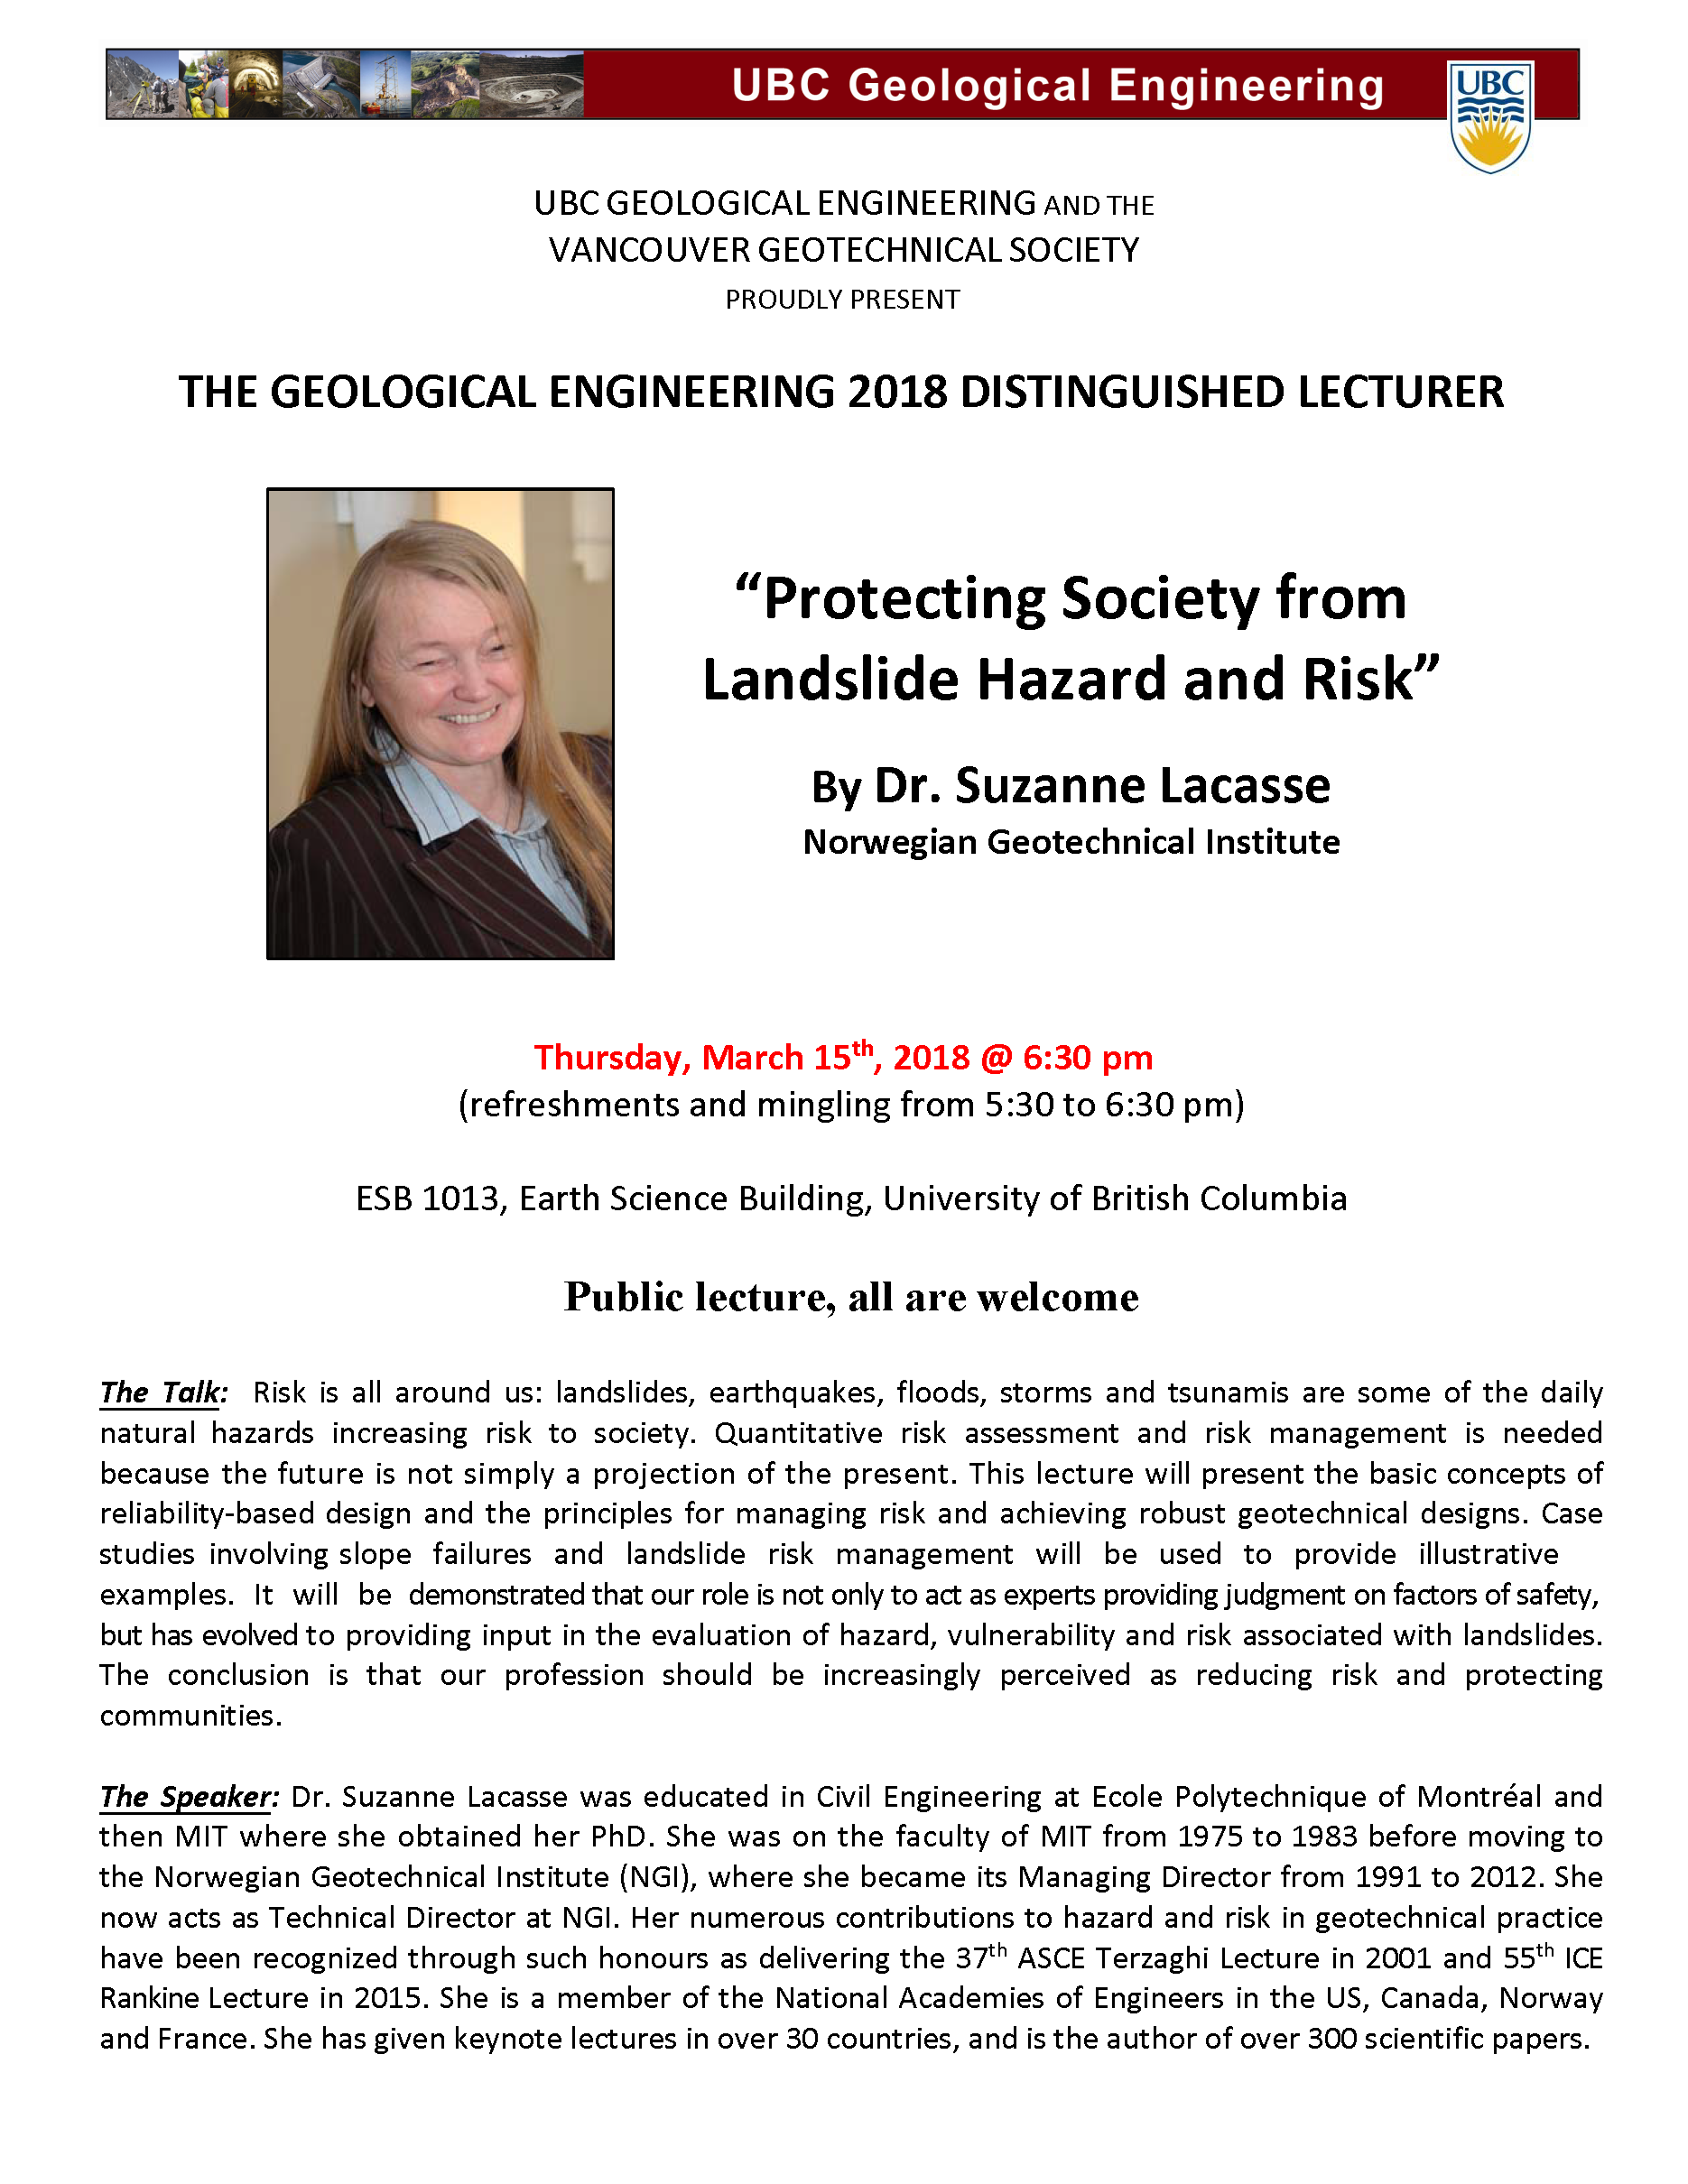 GEOE Distinguished Lecture